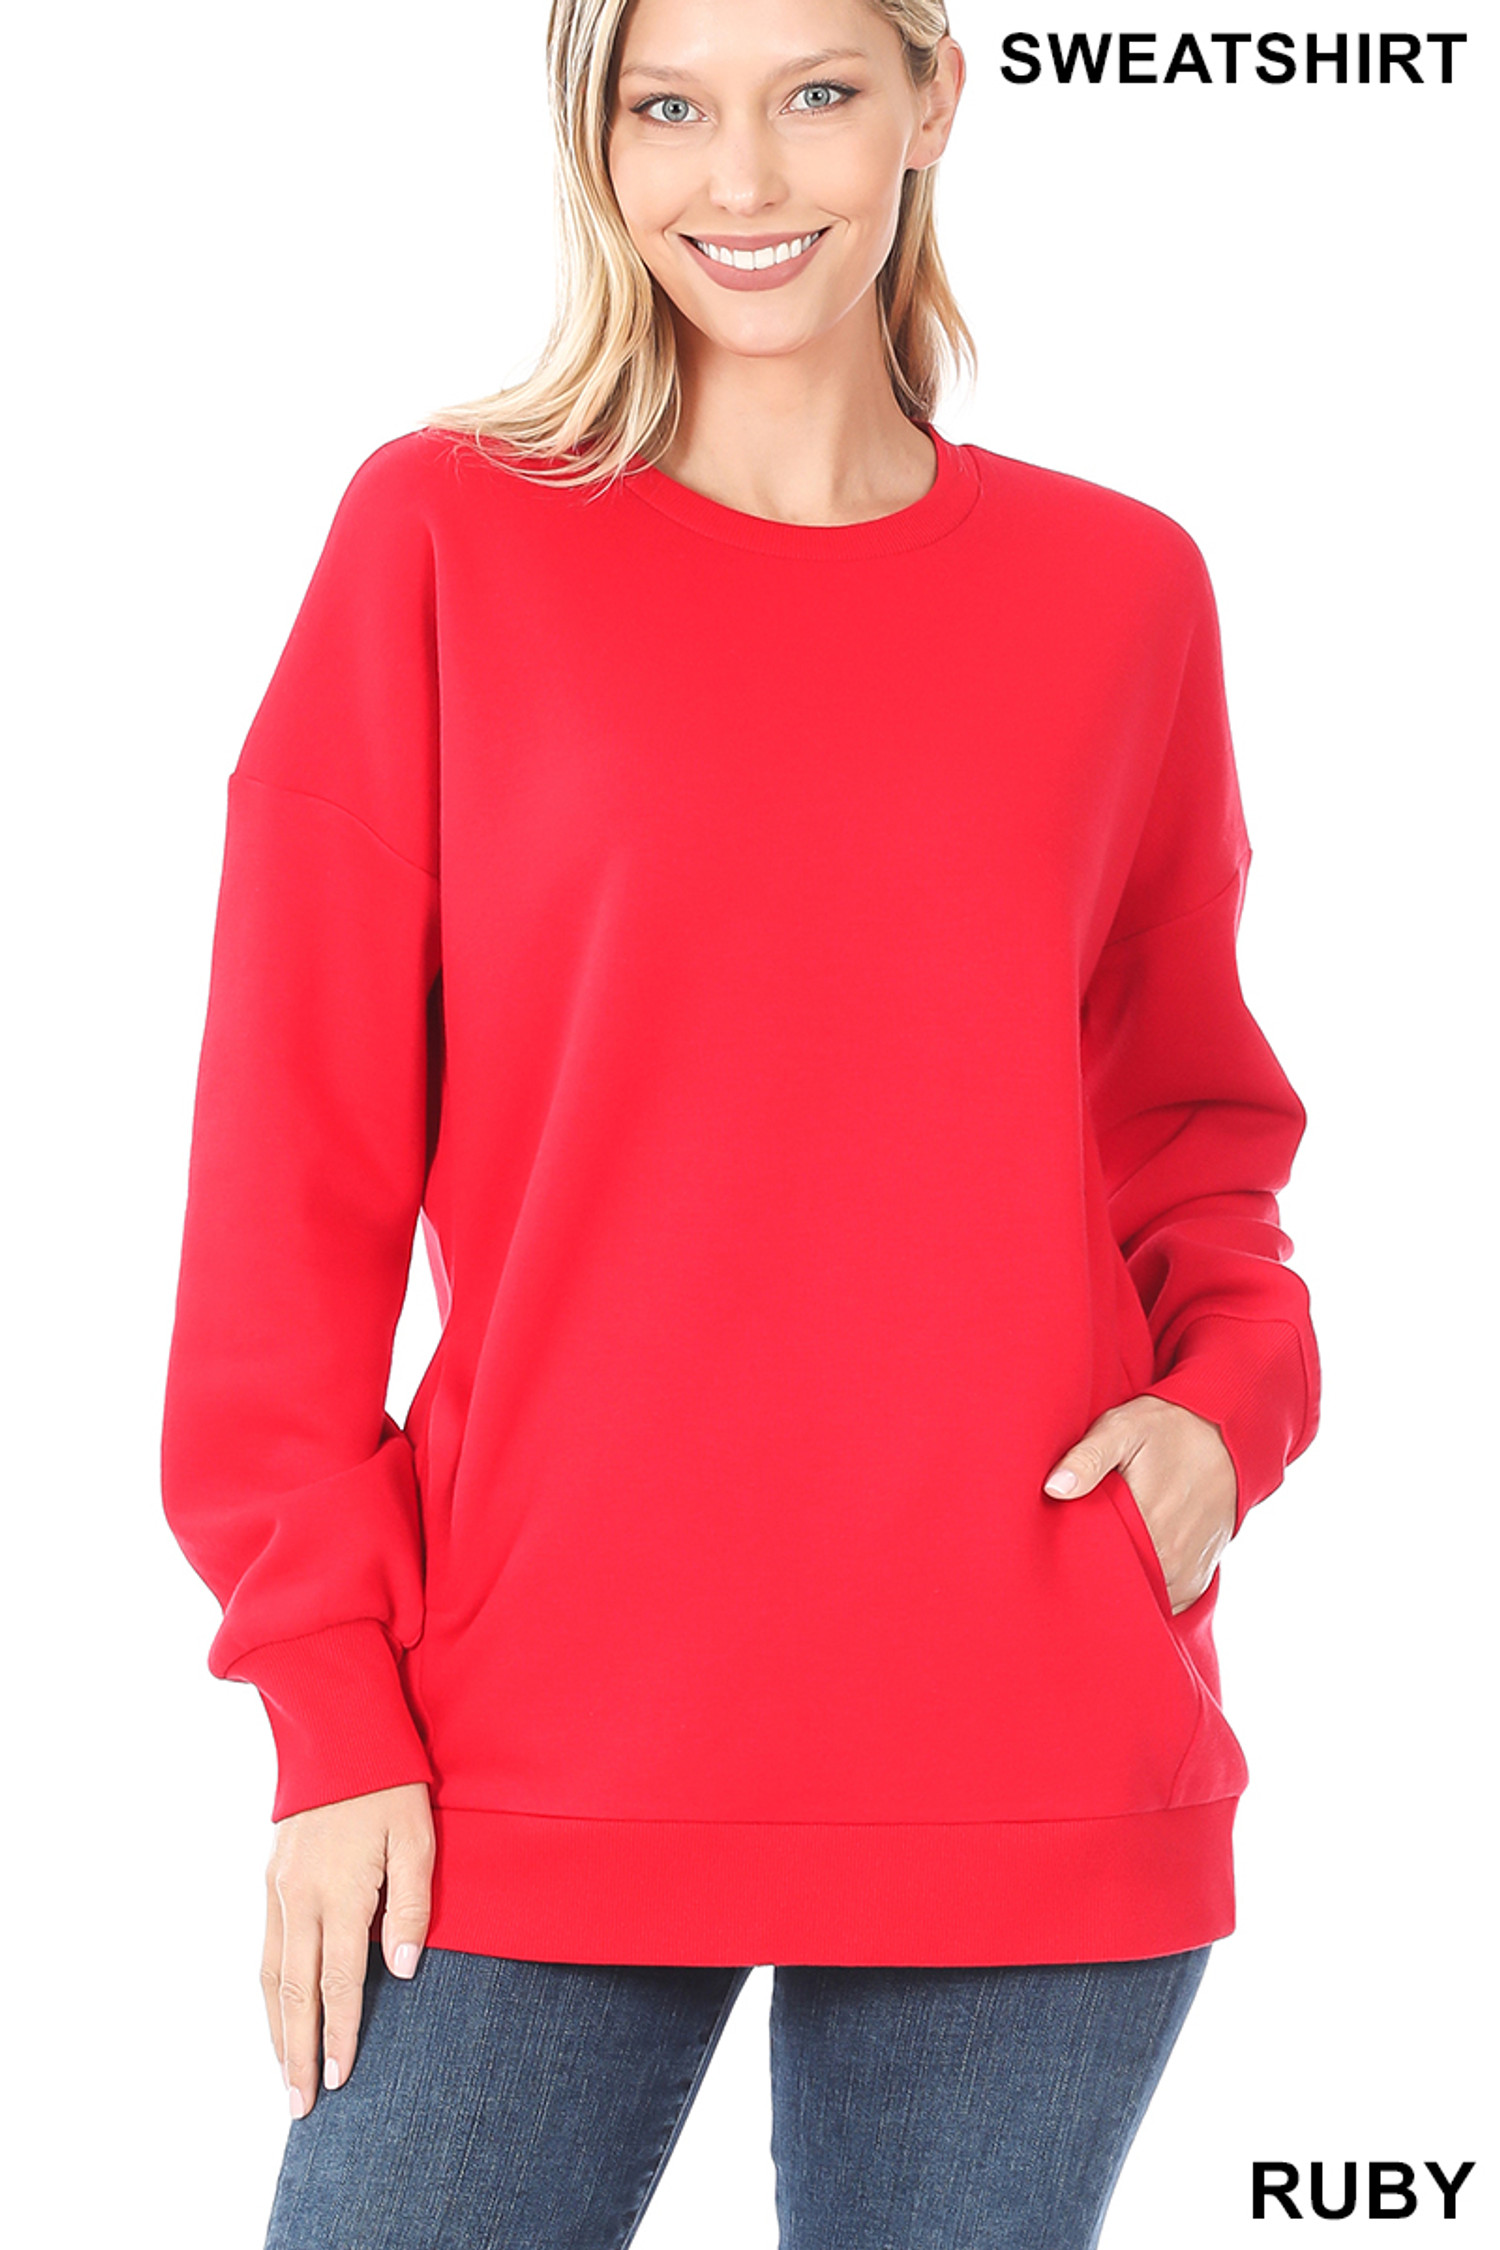 Front image of Ruby Round Crew Neck Sweatshirt with Side Pockets